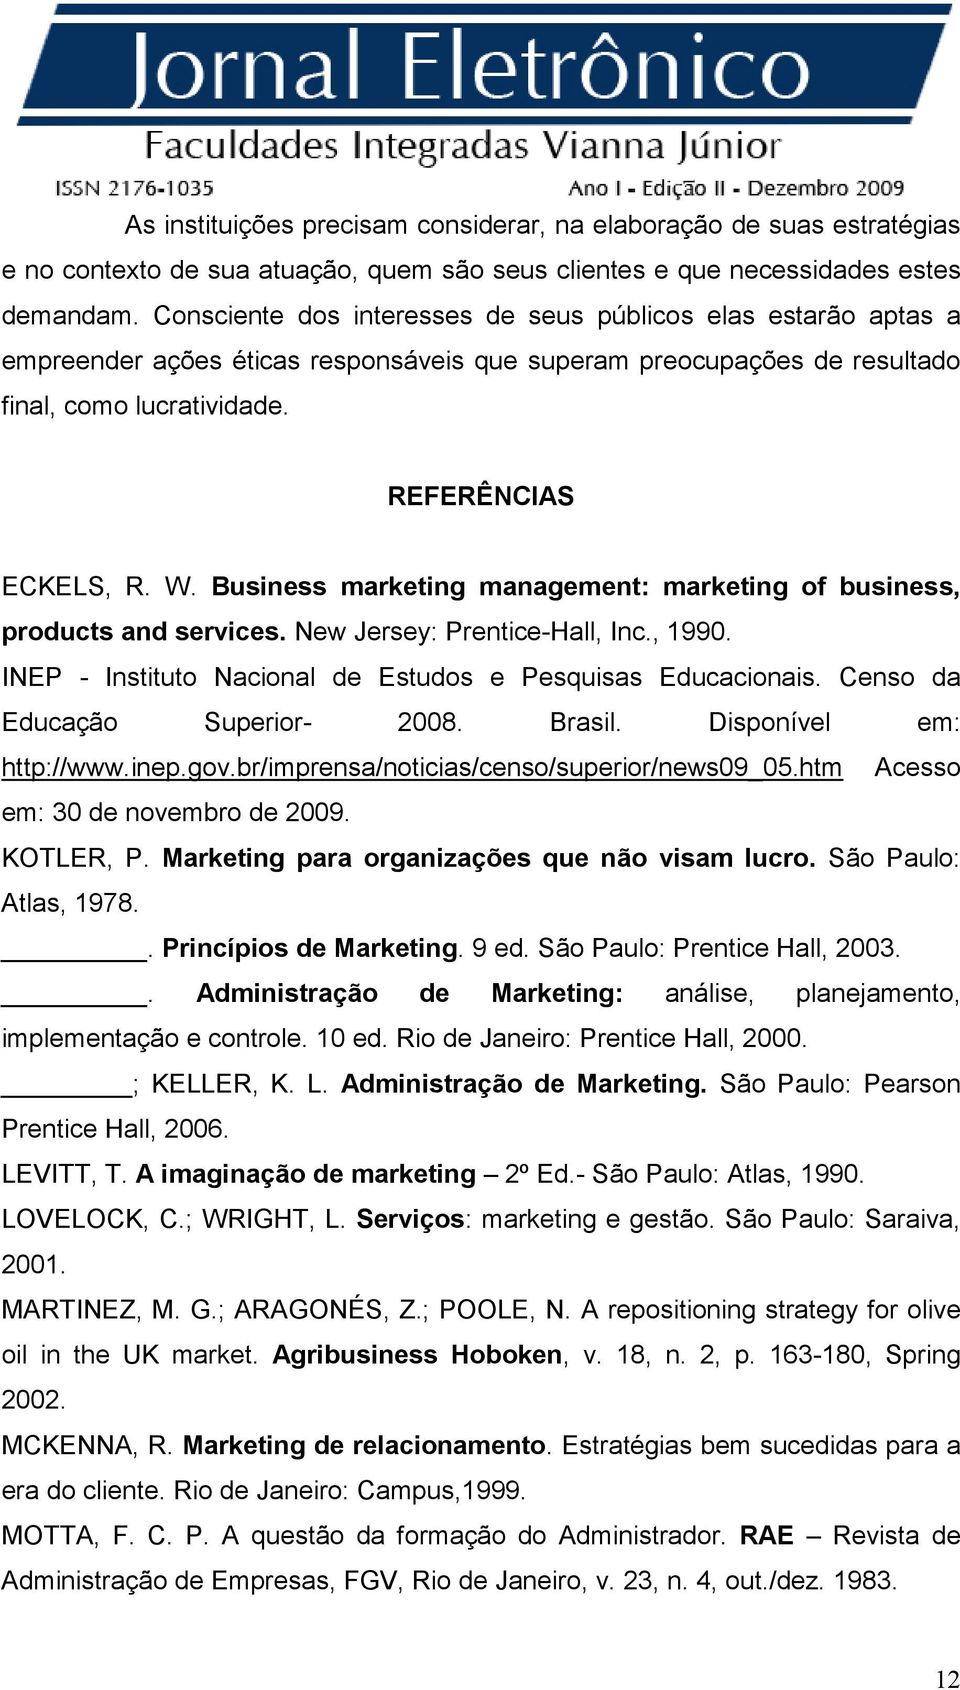 Business marketing management: marketing of business, products and services. New Jersey: Prentice-Hall, Inc., 1990. INEP - Instituto Nacional de Estudos e Pesquisas Educacionais.